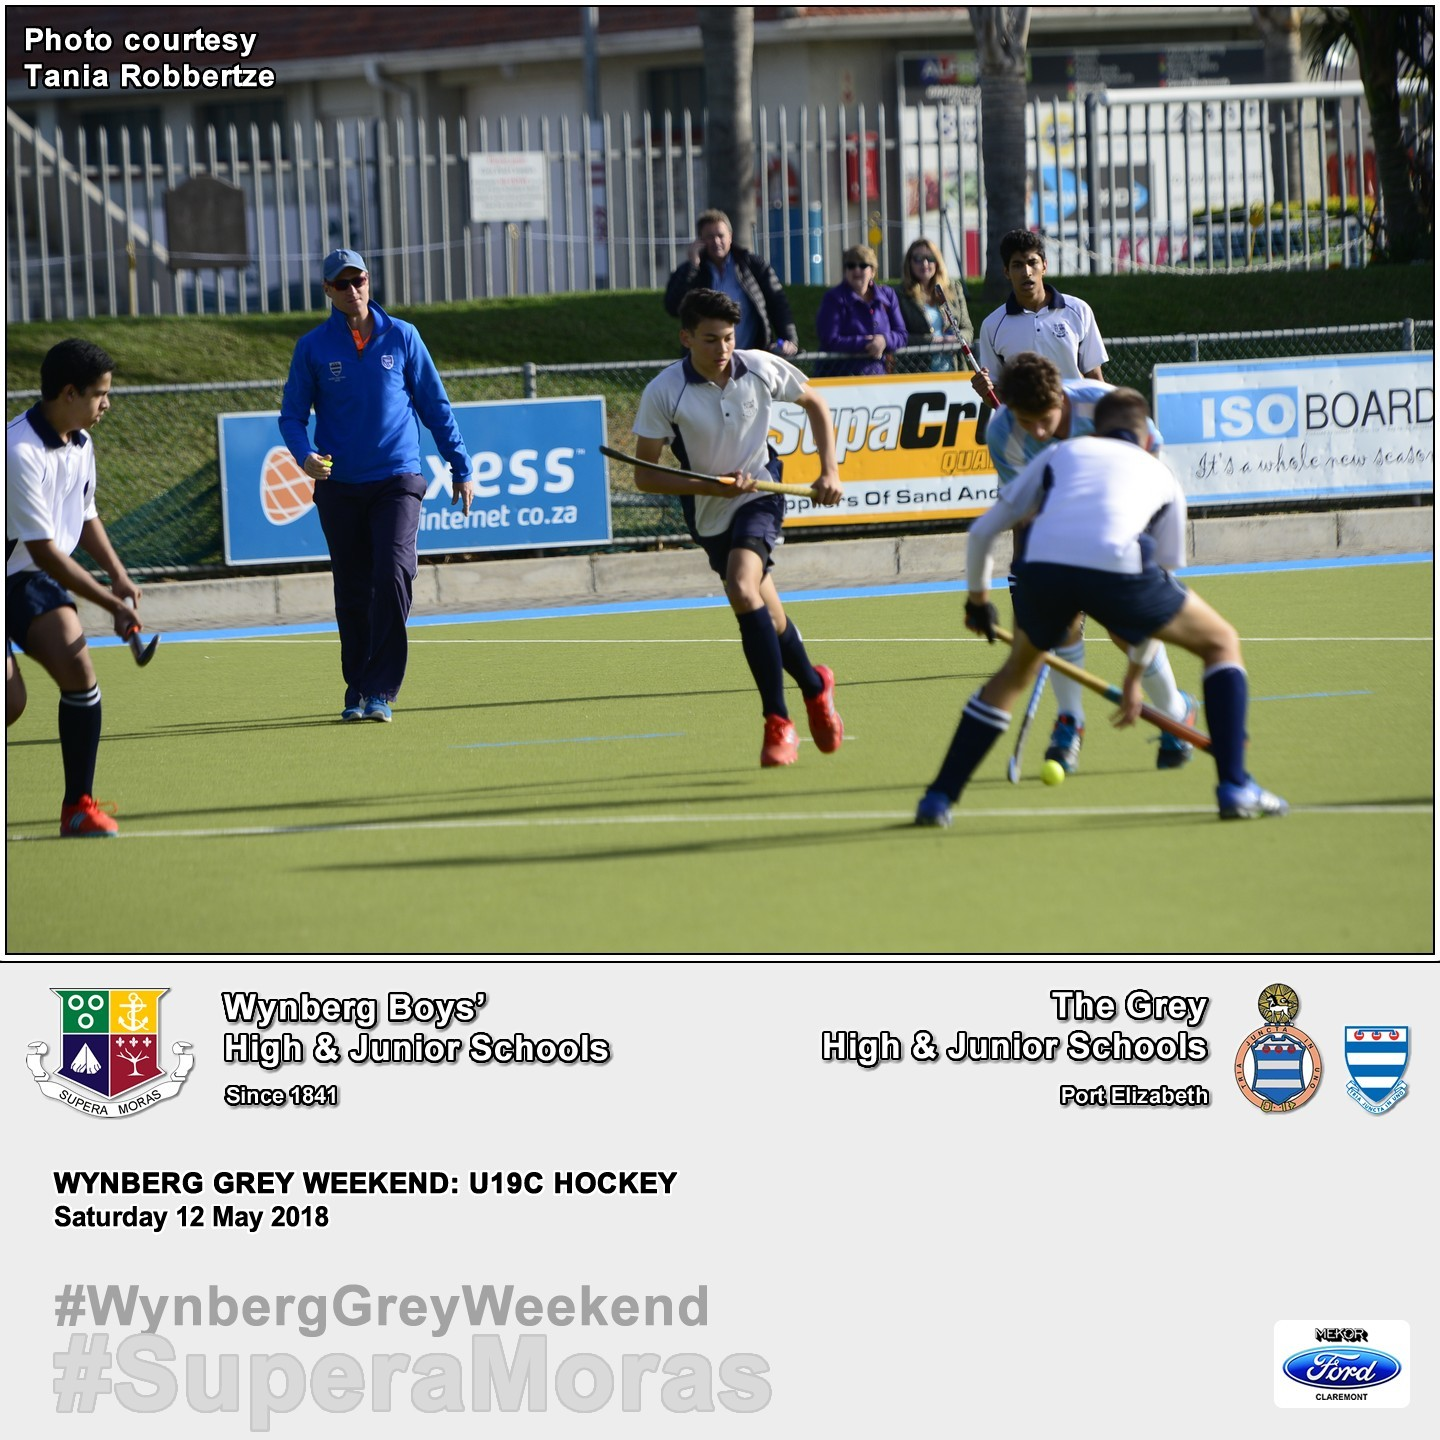 U19C vs Grey High, Saturday 12 May 2018